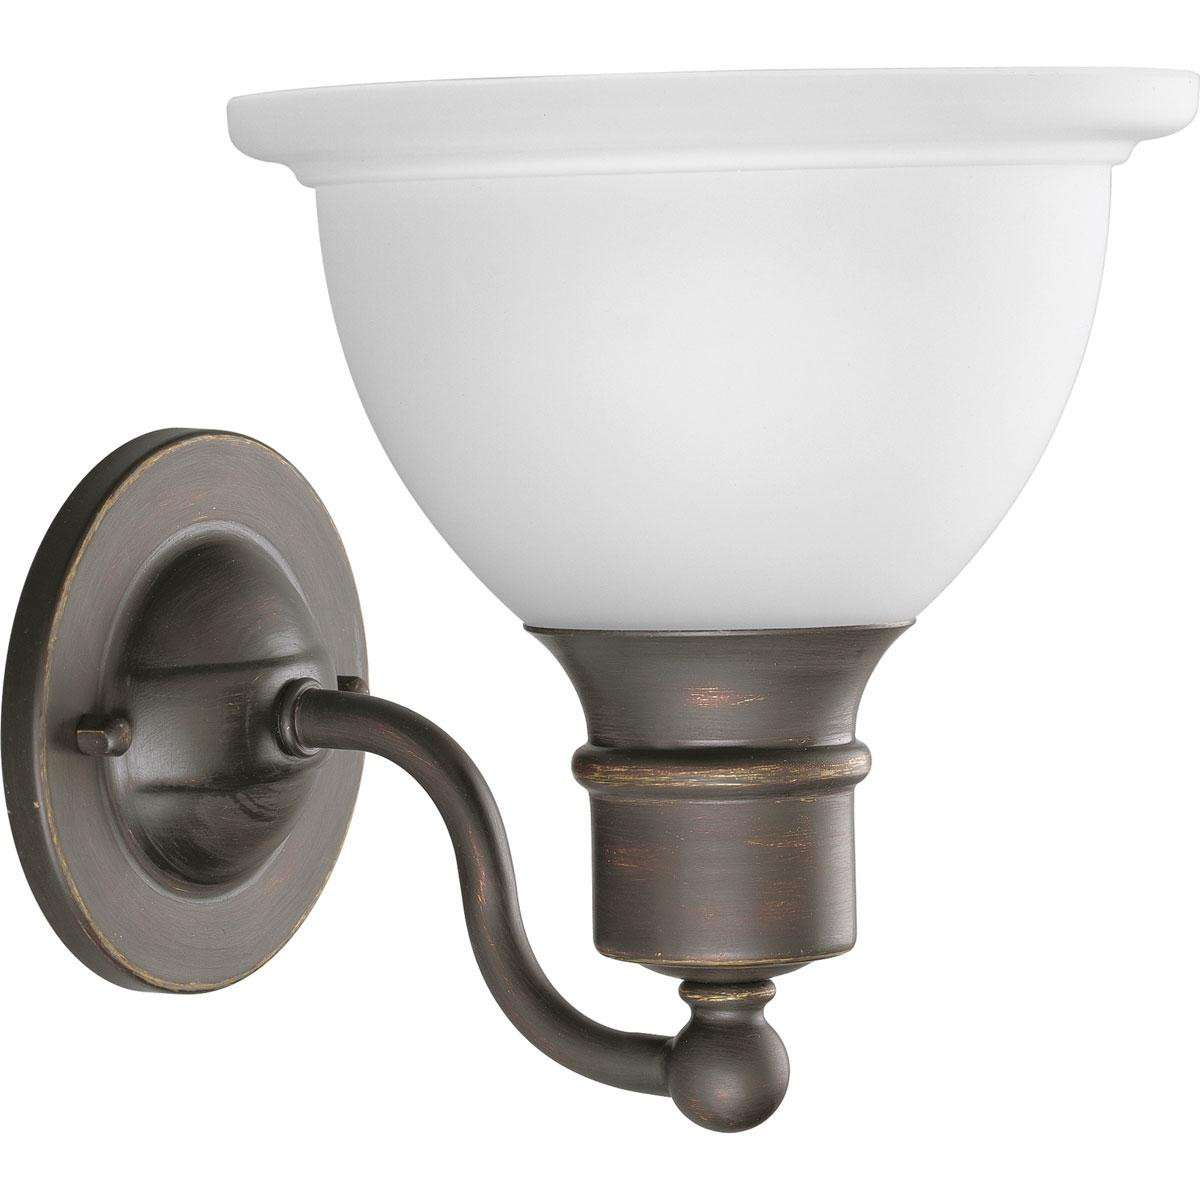 Progress P3161-20 One-light wall bracket in Antique Bronze finish with white etched glass.